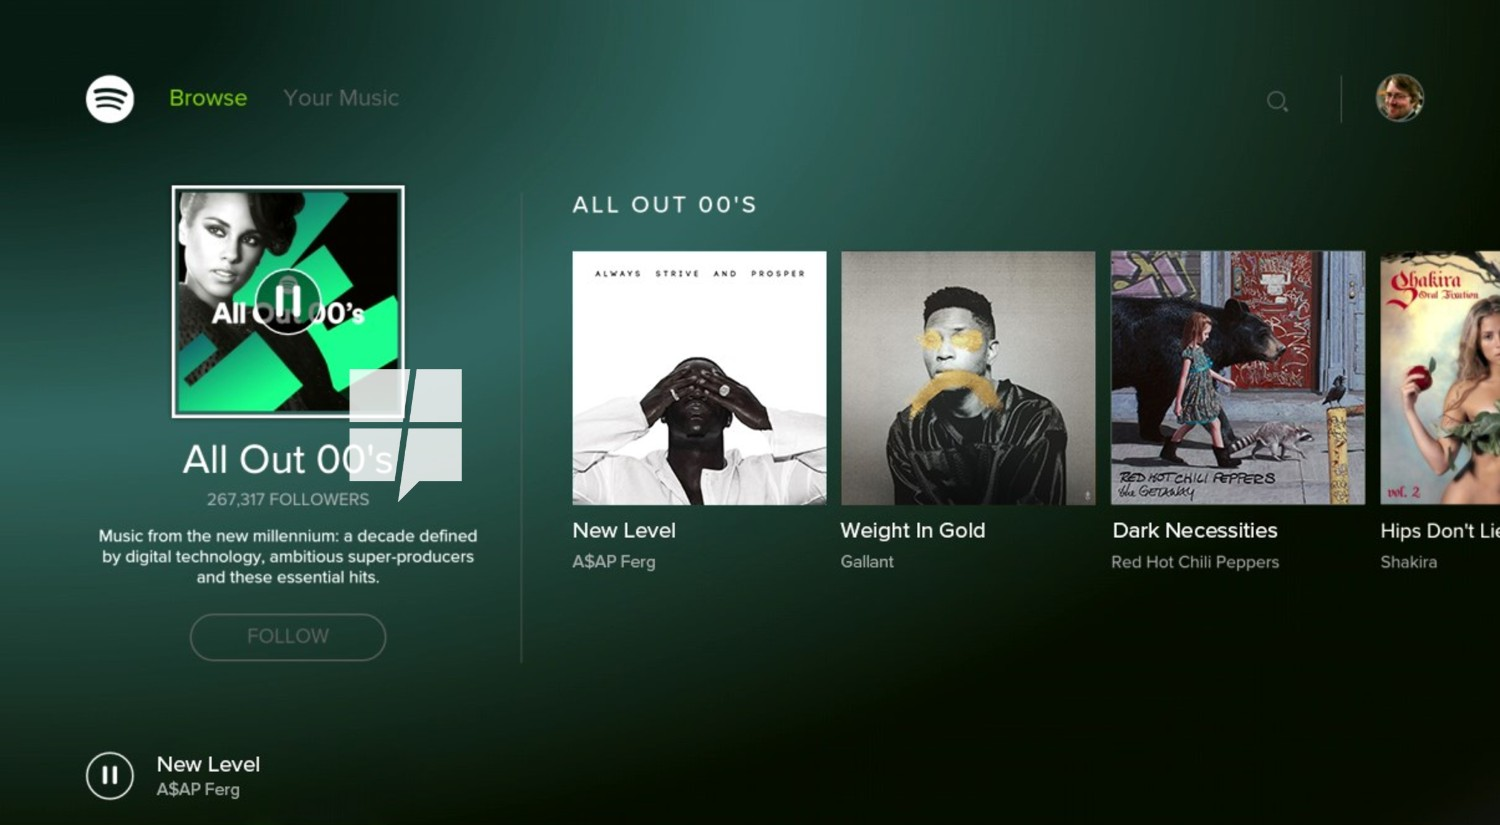 This is Spotify for the Xbox One 2